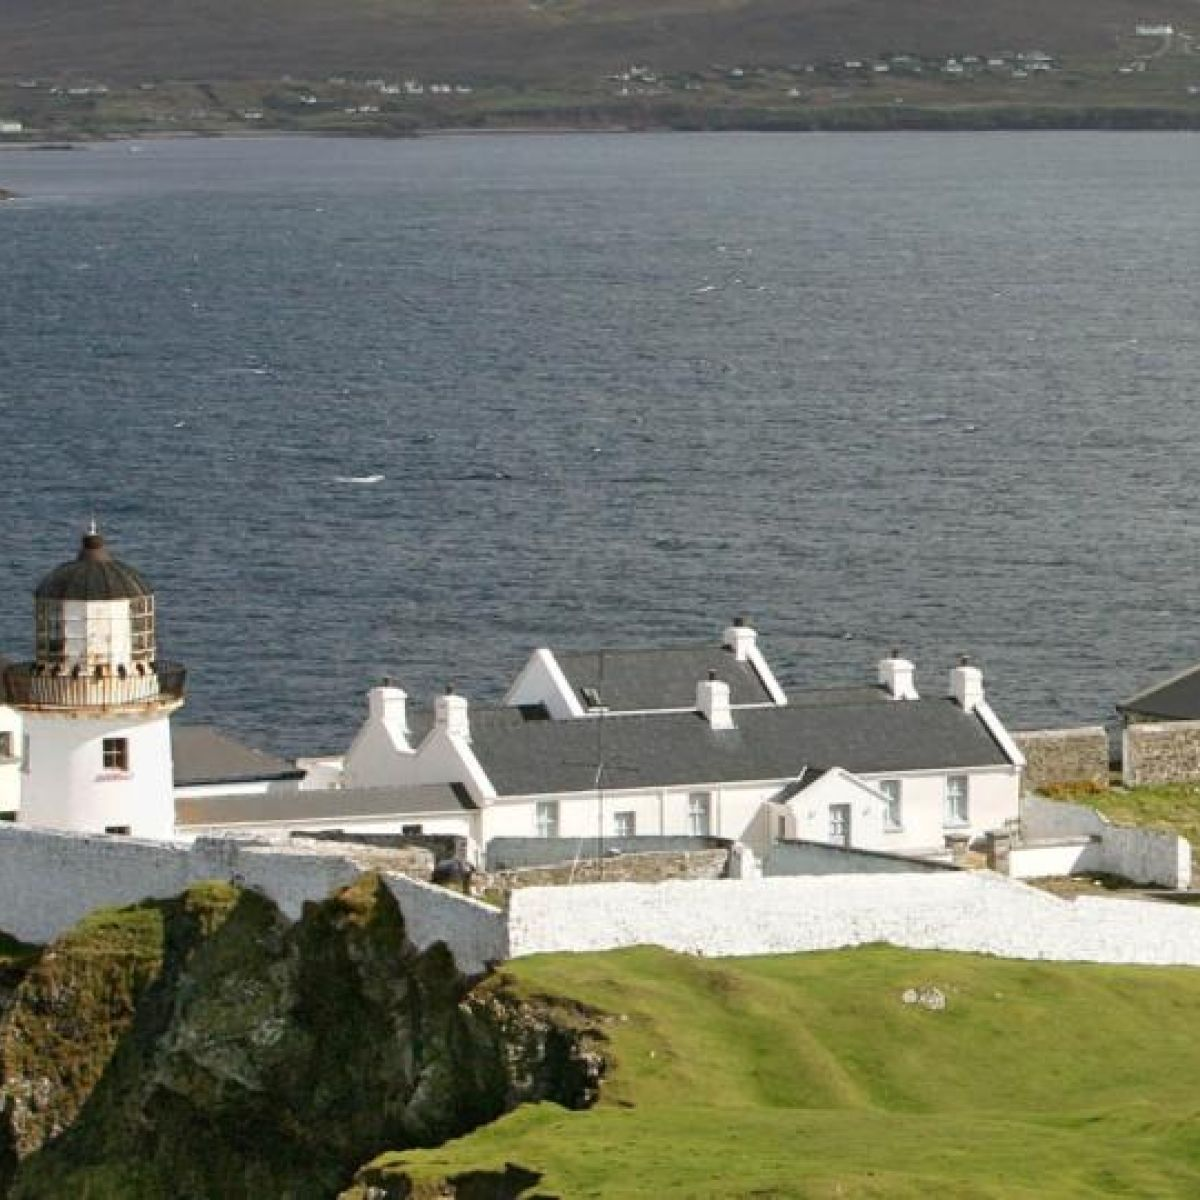 Clare Island lighthouse shines on